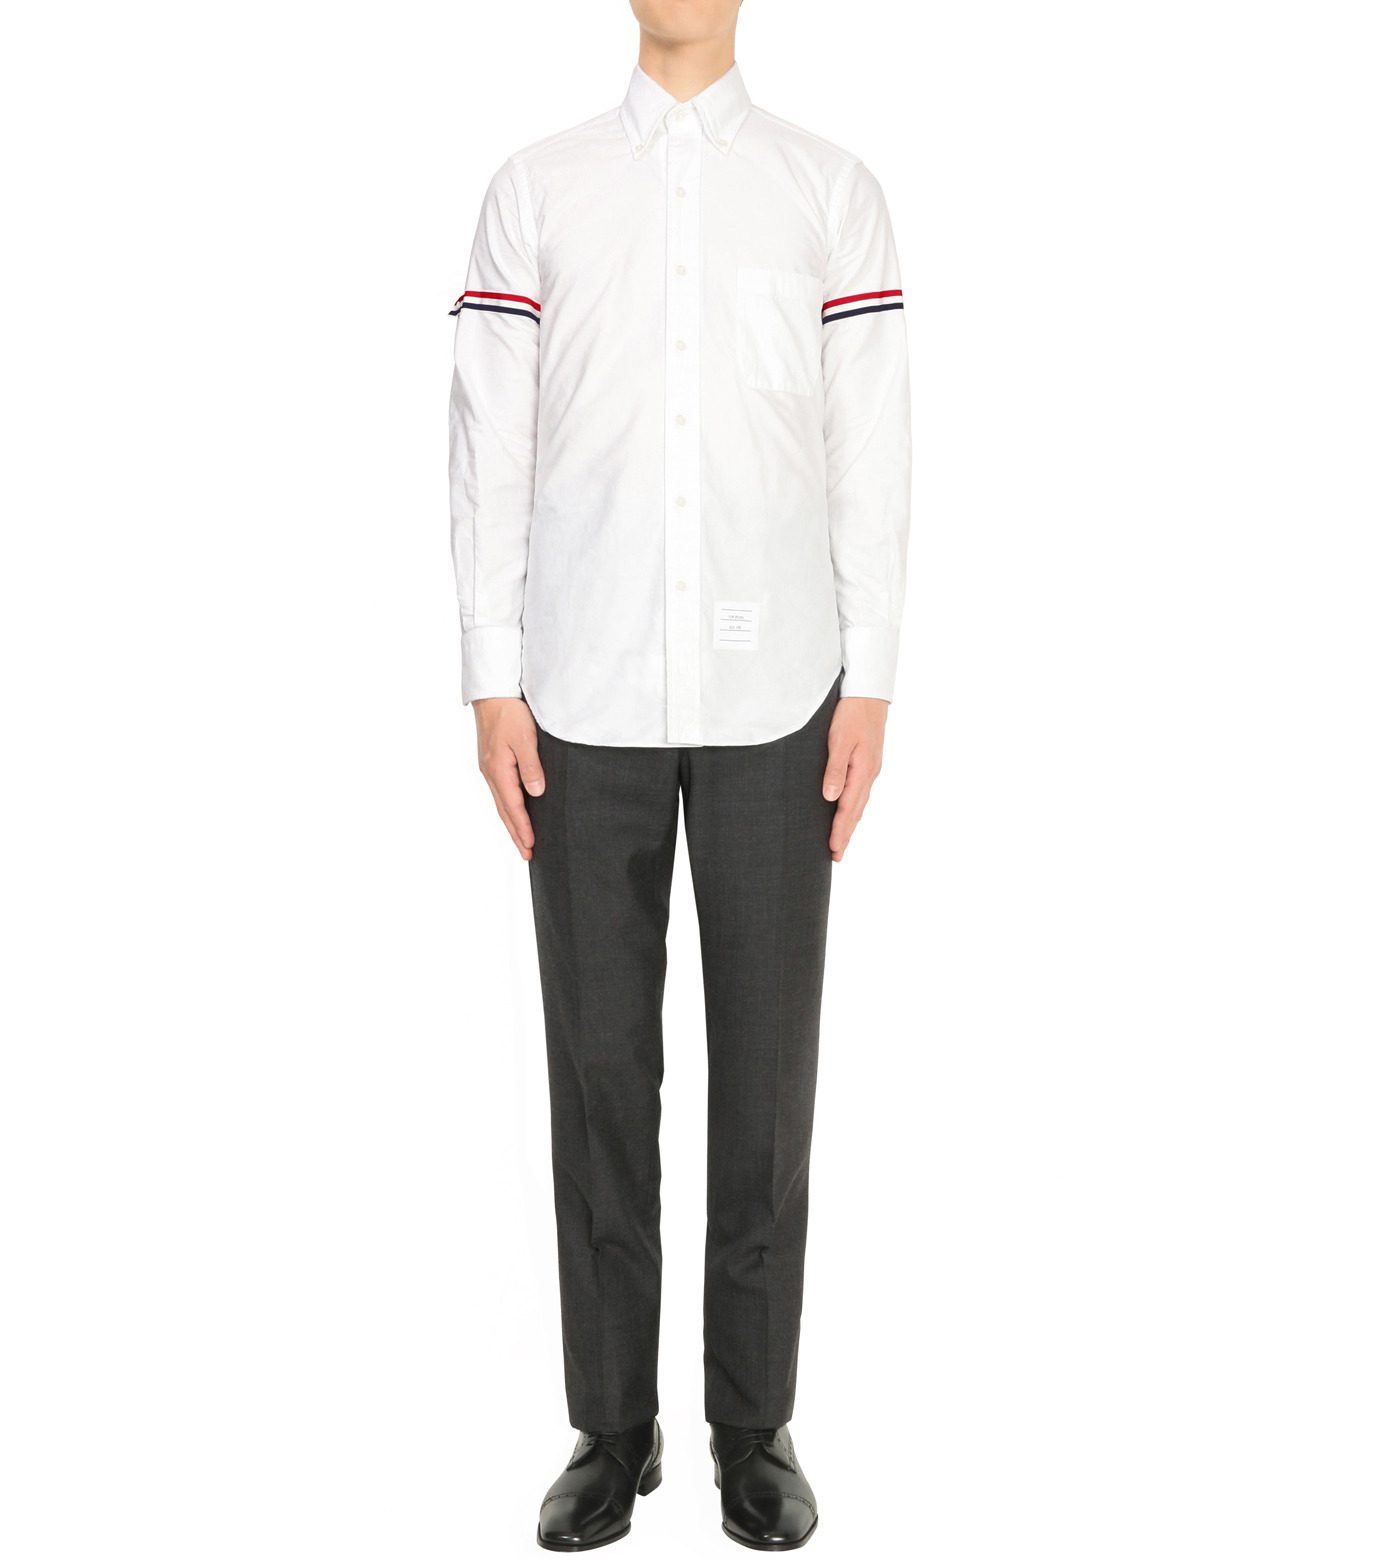 Thom Browne(トムブラウン)のArmband Shirt-WHITE(シャツ/shirt)-A0164A41410-4 拡大詳細画像3